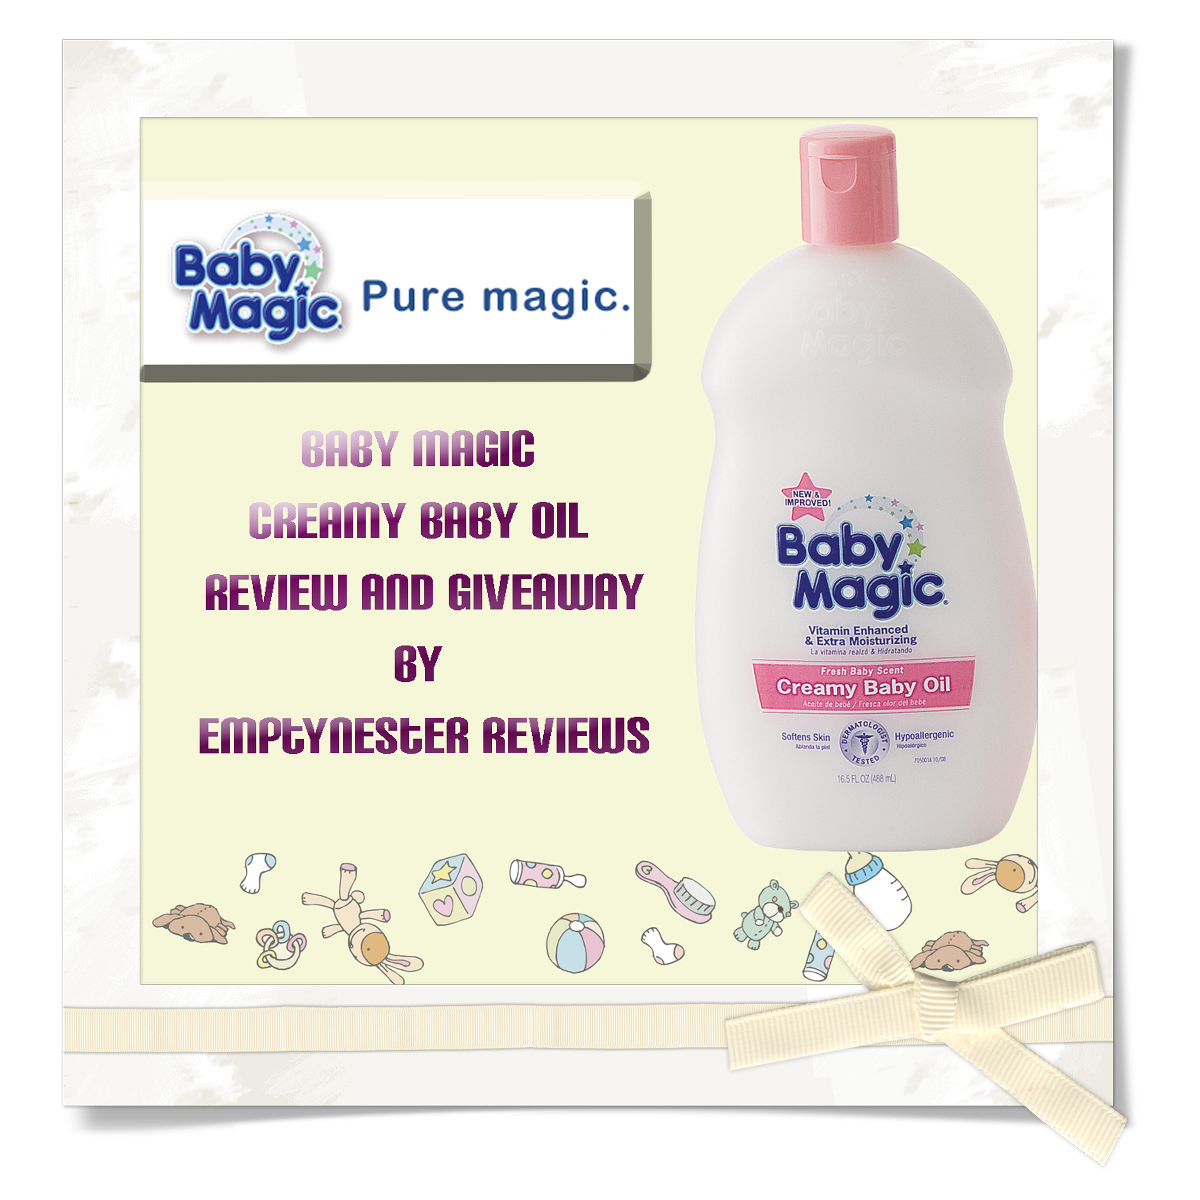 Baby Magic Creamy Baby Oil Review and Giveaway